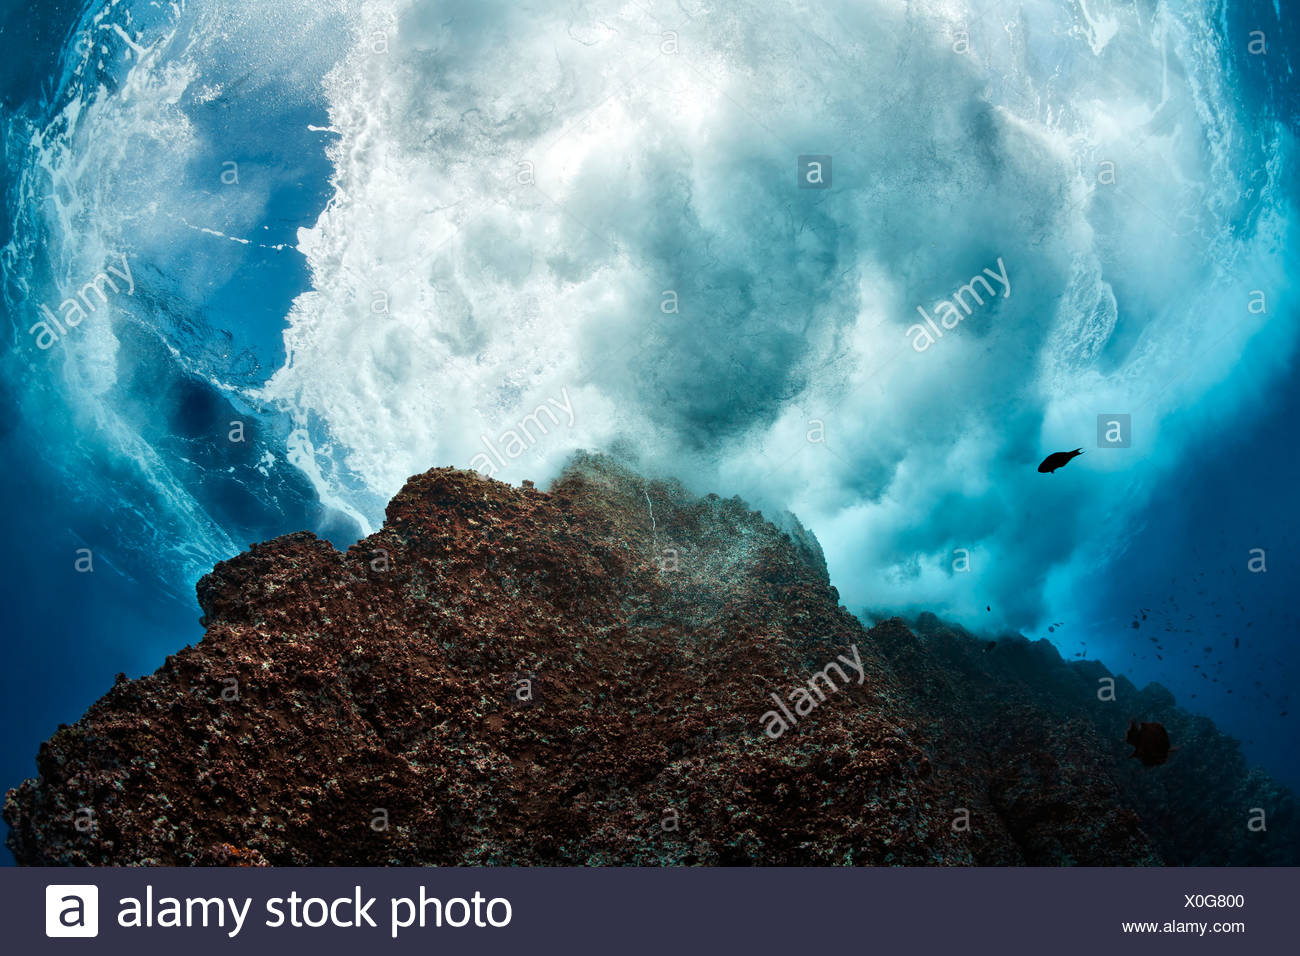 Towering rock bathed in waves, cliff, Roca Partida, Revillagigedo Islands, Mexico, America, Eastern Pacific - Stock Image